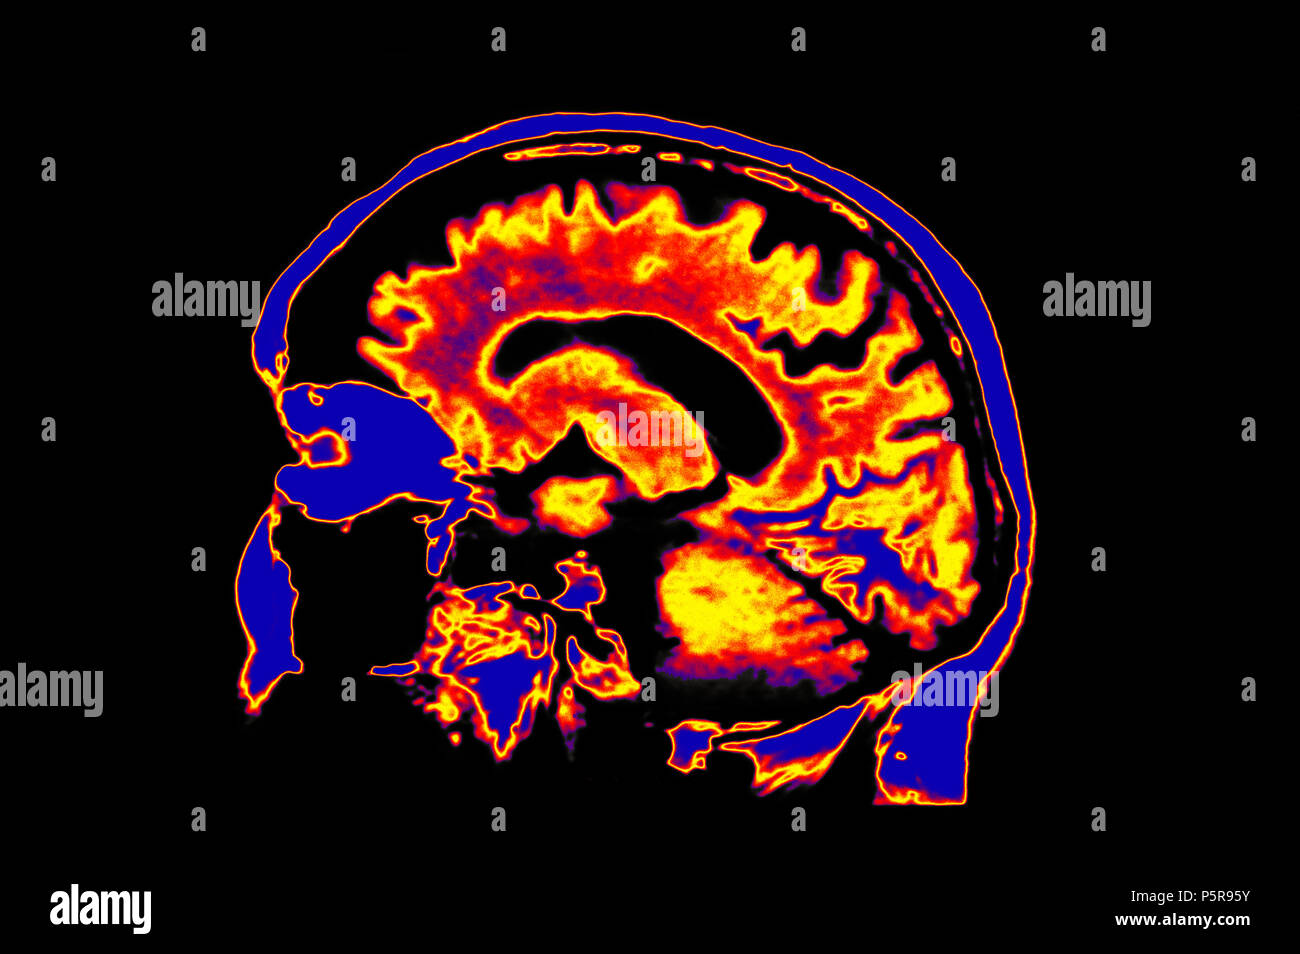 Colorized MRI Image Of Head Showing Brain - Stock Image